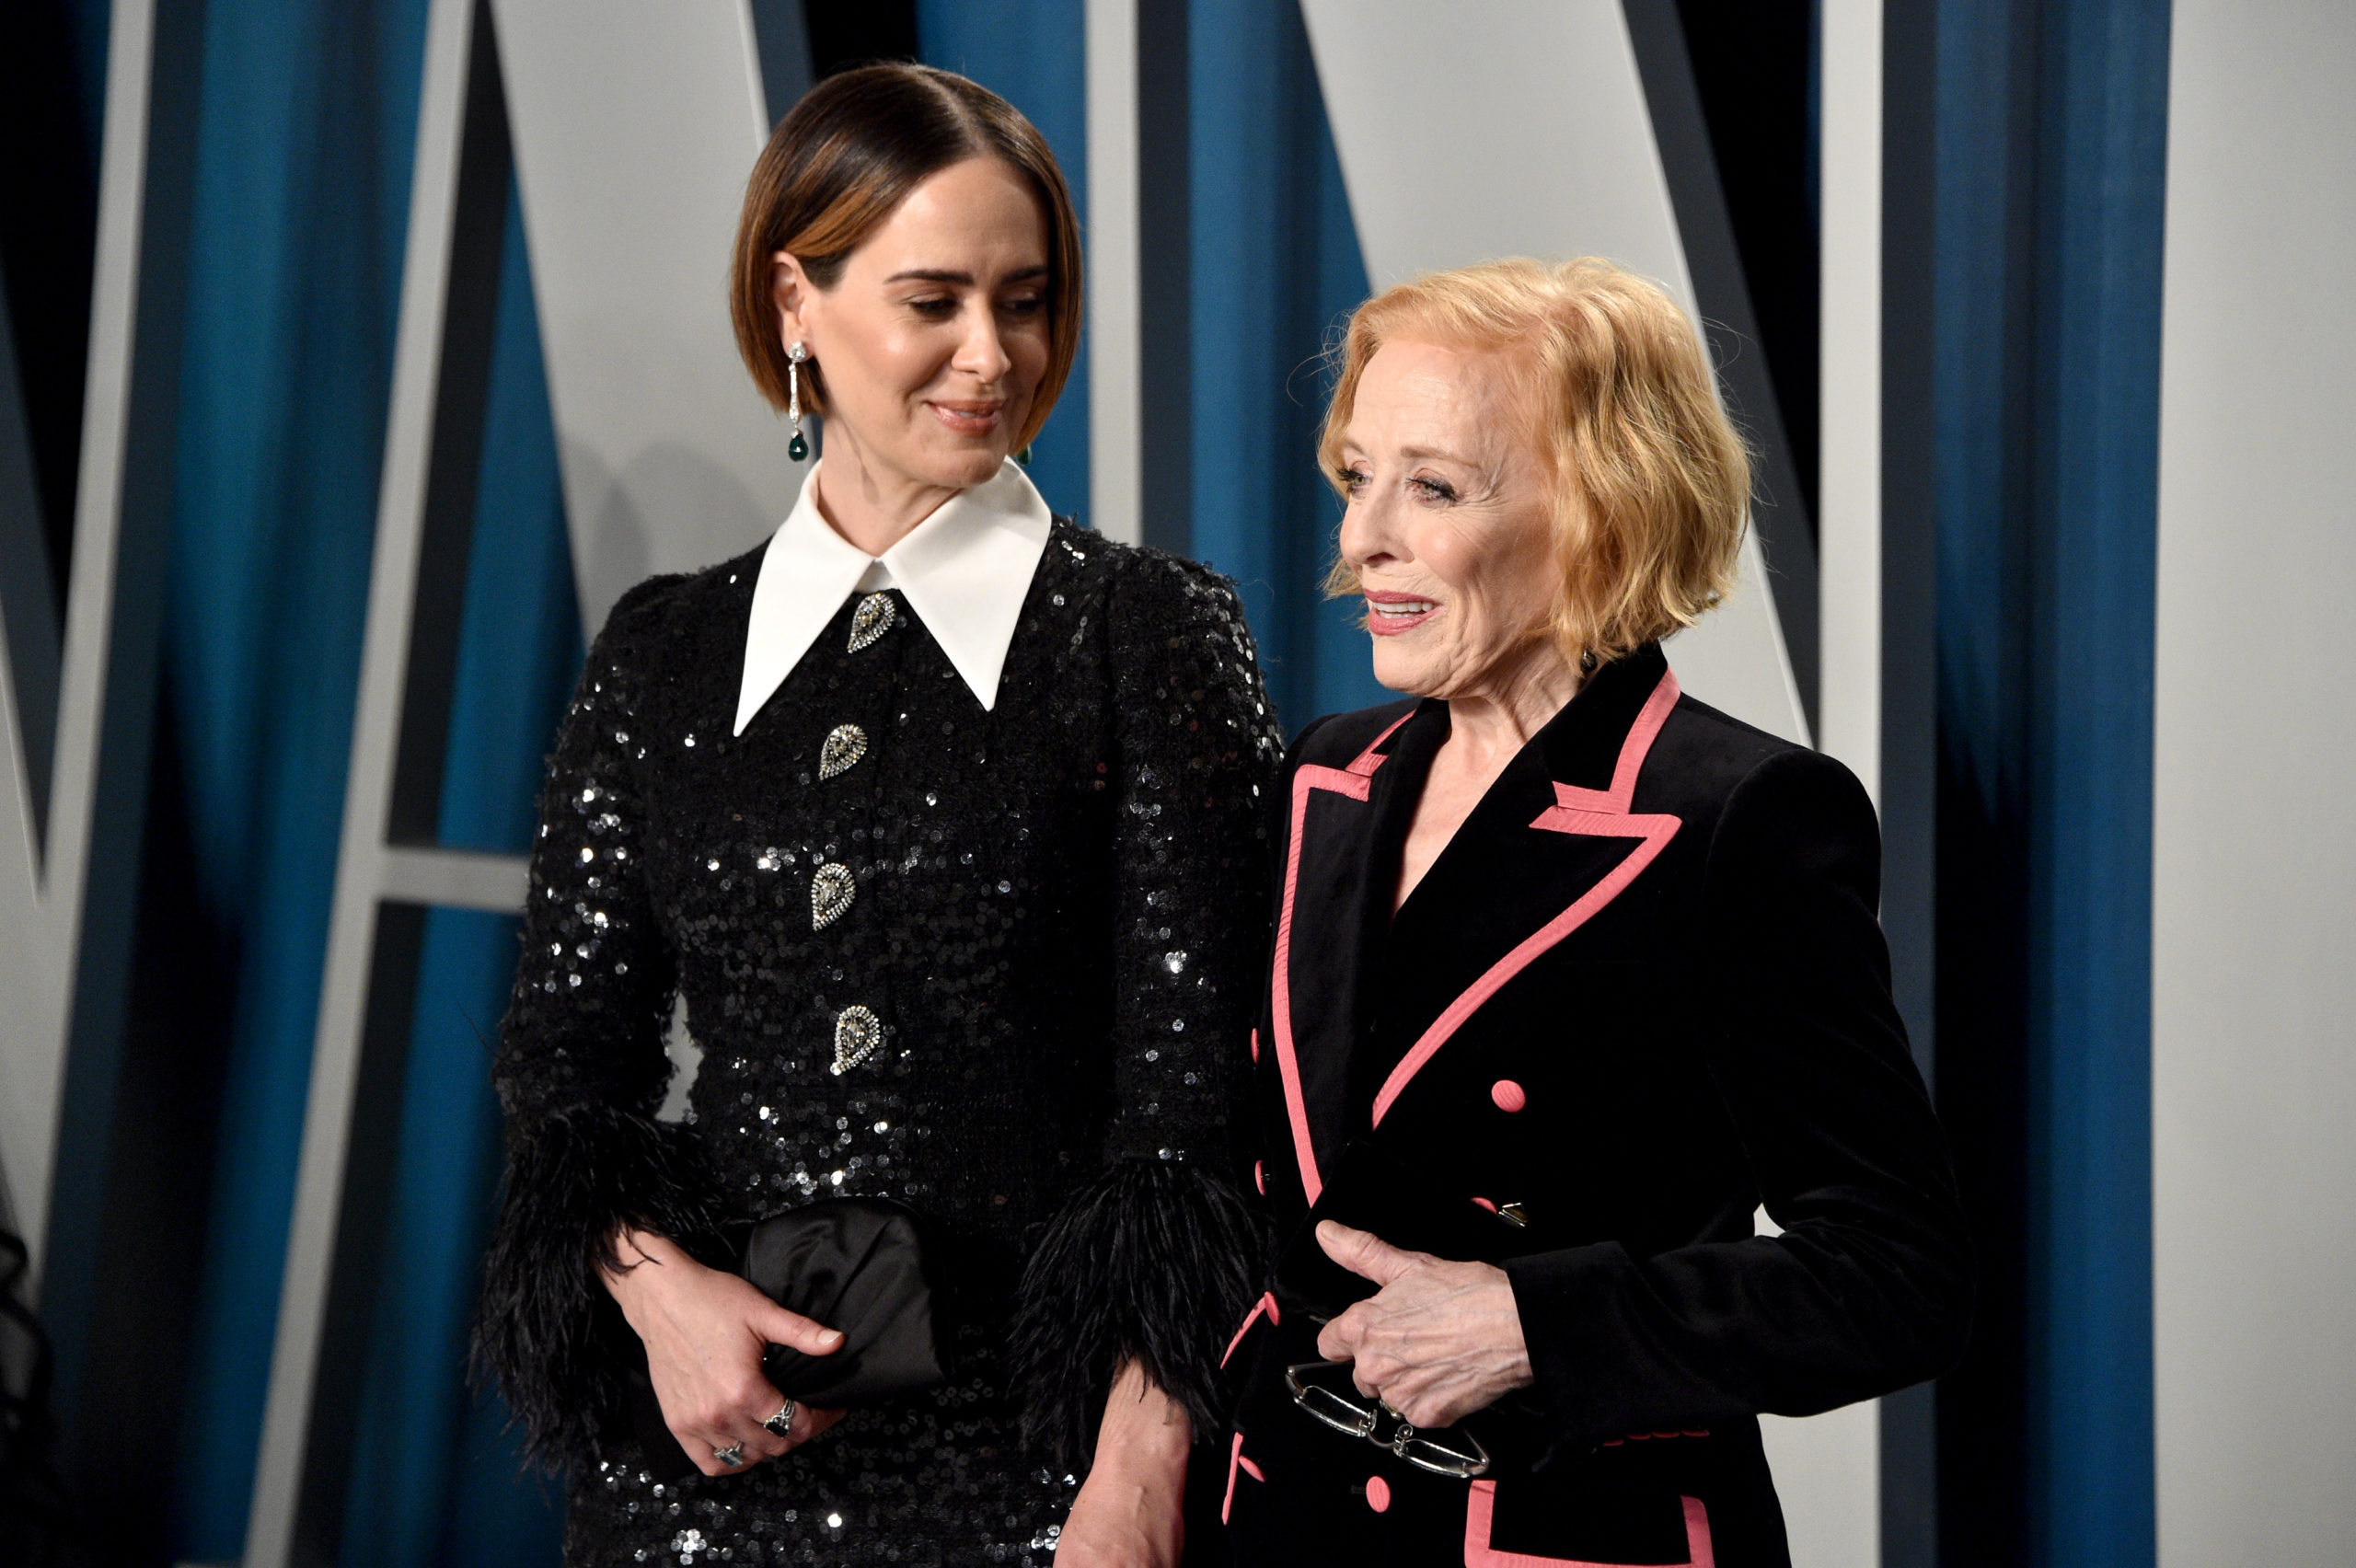 Sarah Paulson and Holland Taylor attends the 2020 Vanity Fair Oscar Party